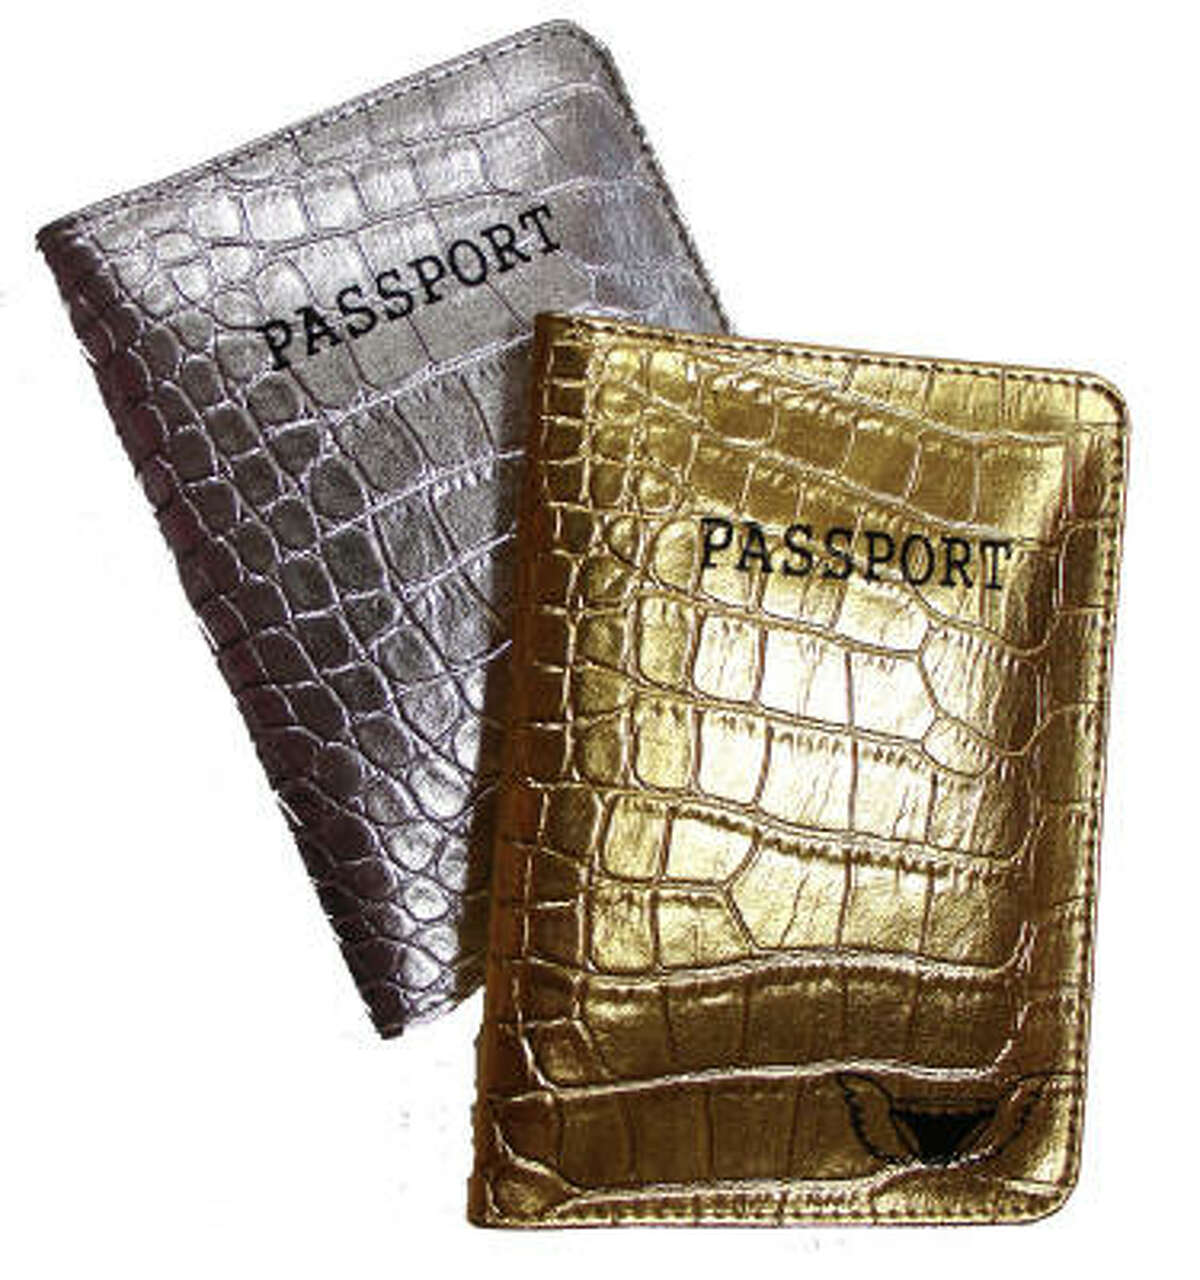 Passport Panties by MMK Brands come disguised in a passport cover and tuck easily into carry-ons to ensure a